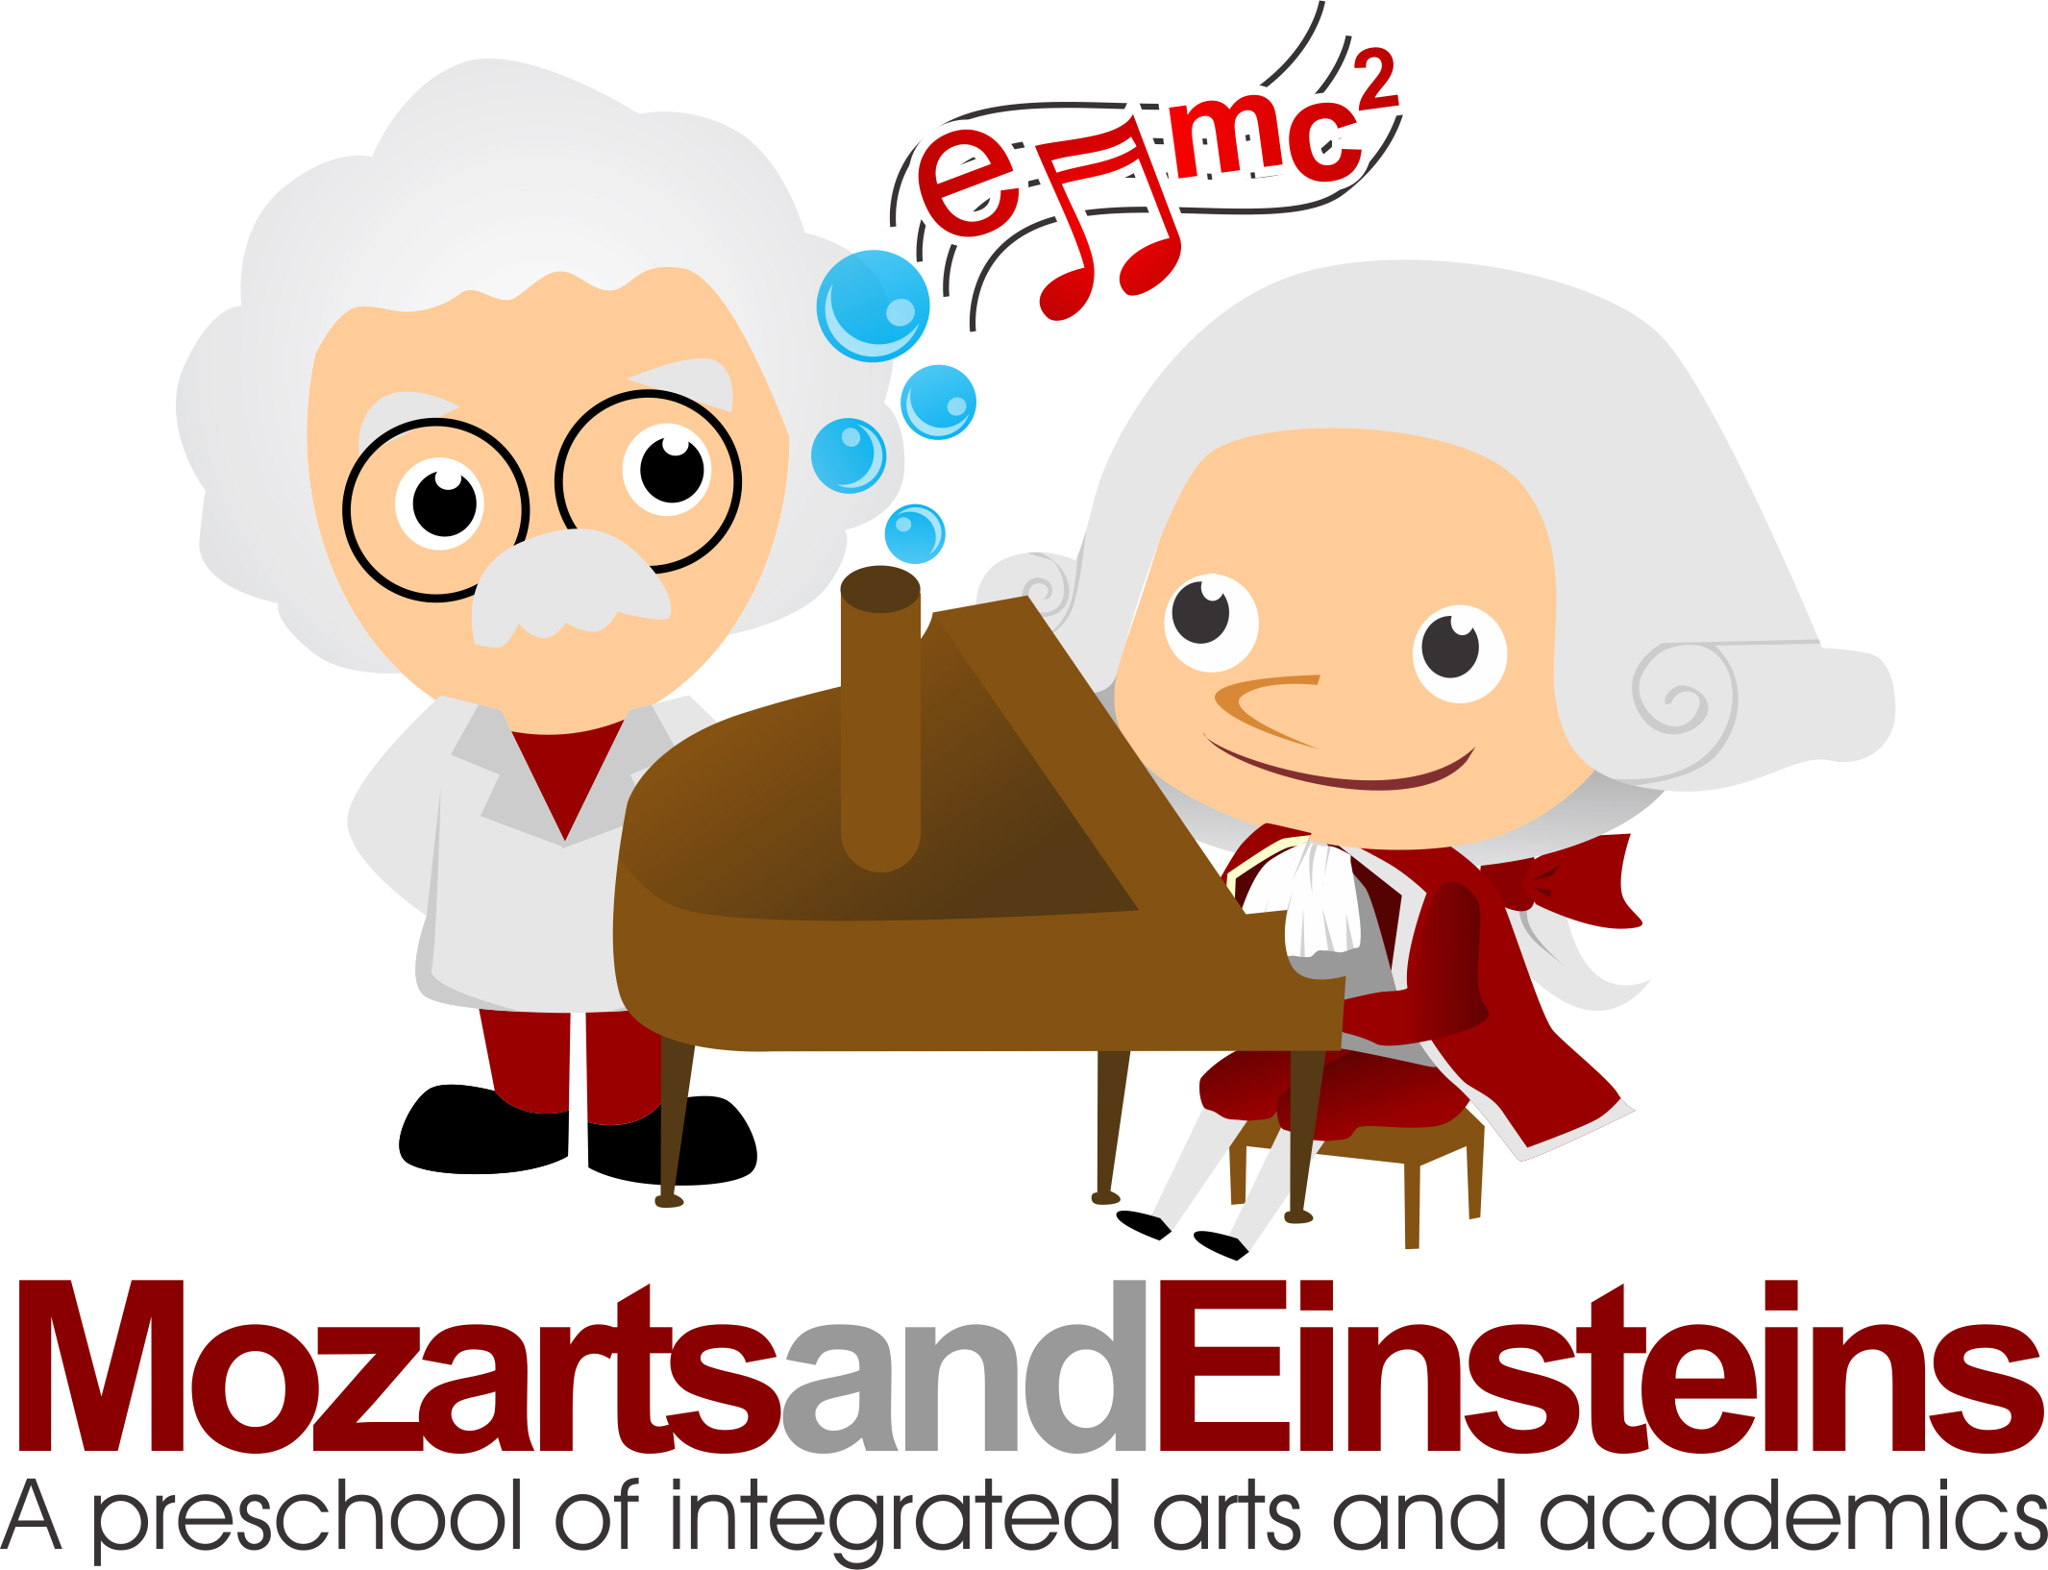 Philosophy clipart academics Einsteins and Philosophy Einsteins Mozarts